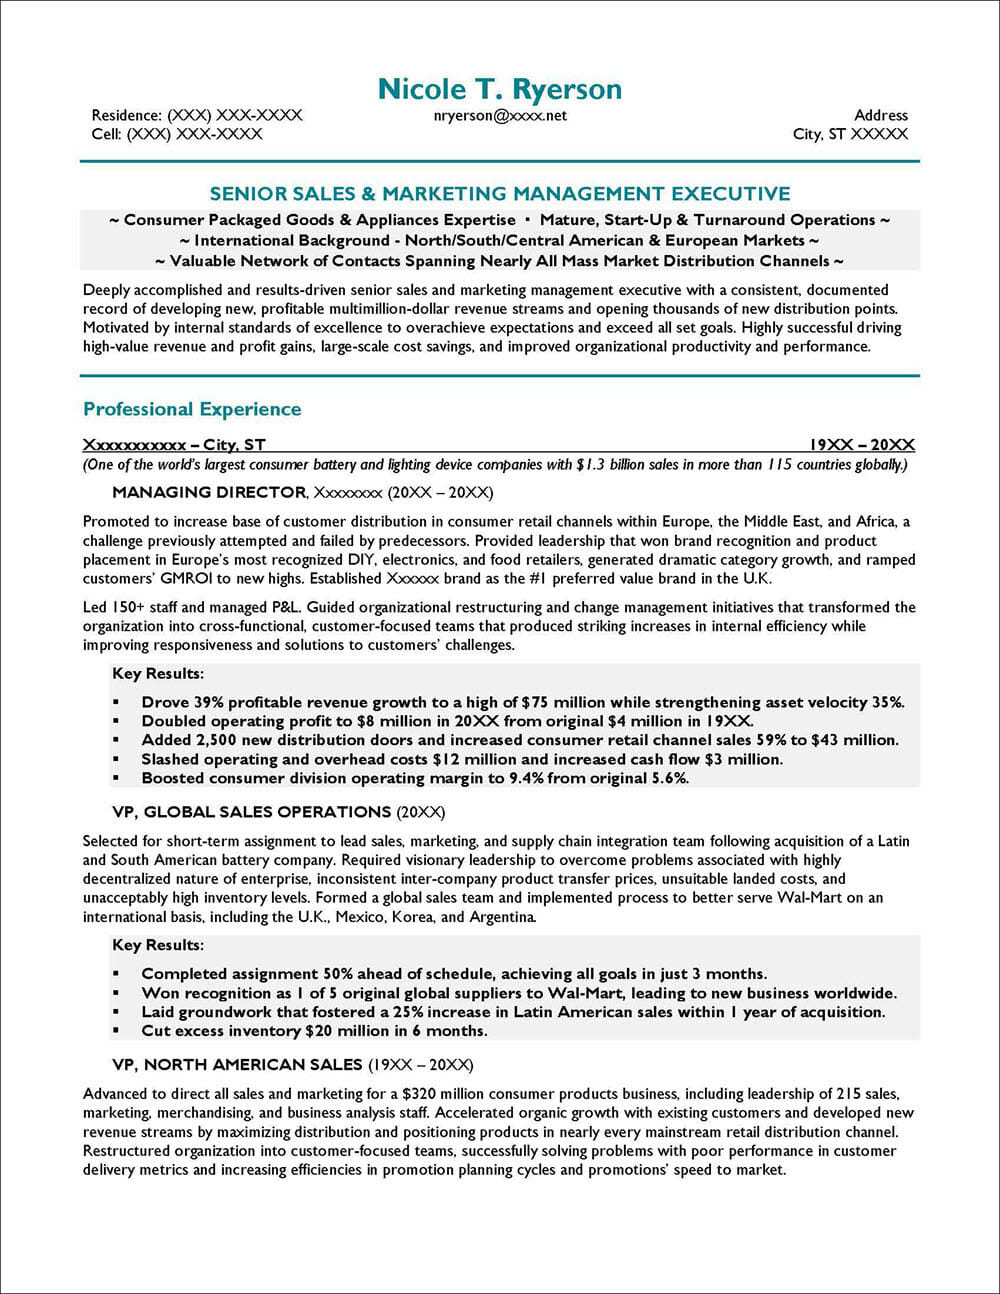 resume objective examples distinctive career services basic ideas manager example Resume Basic Resume Objective Ideas